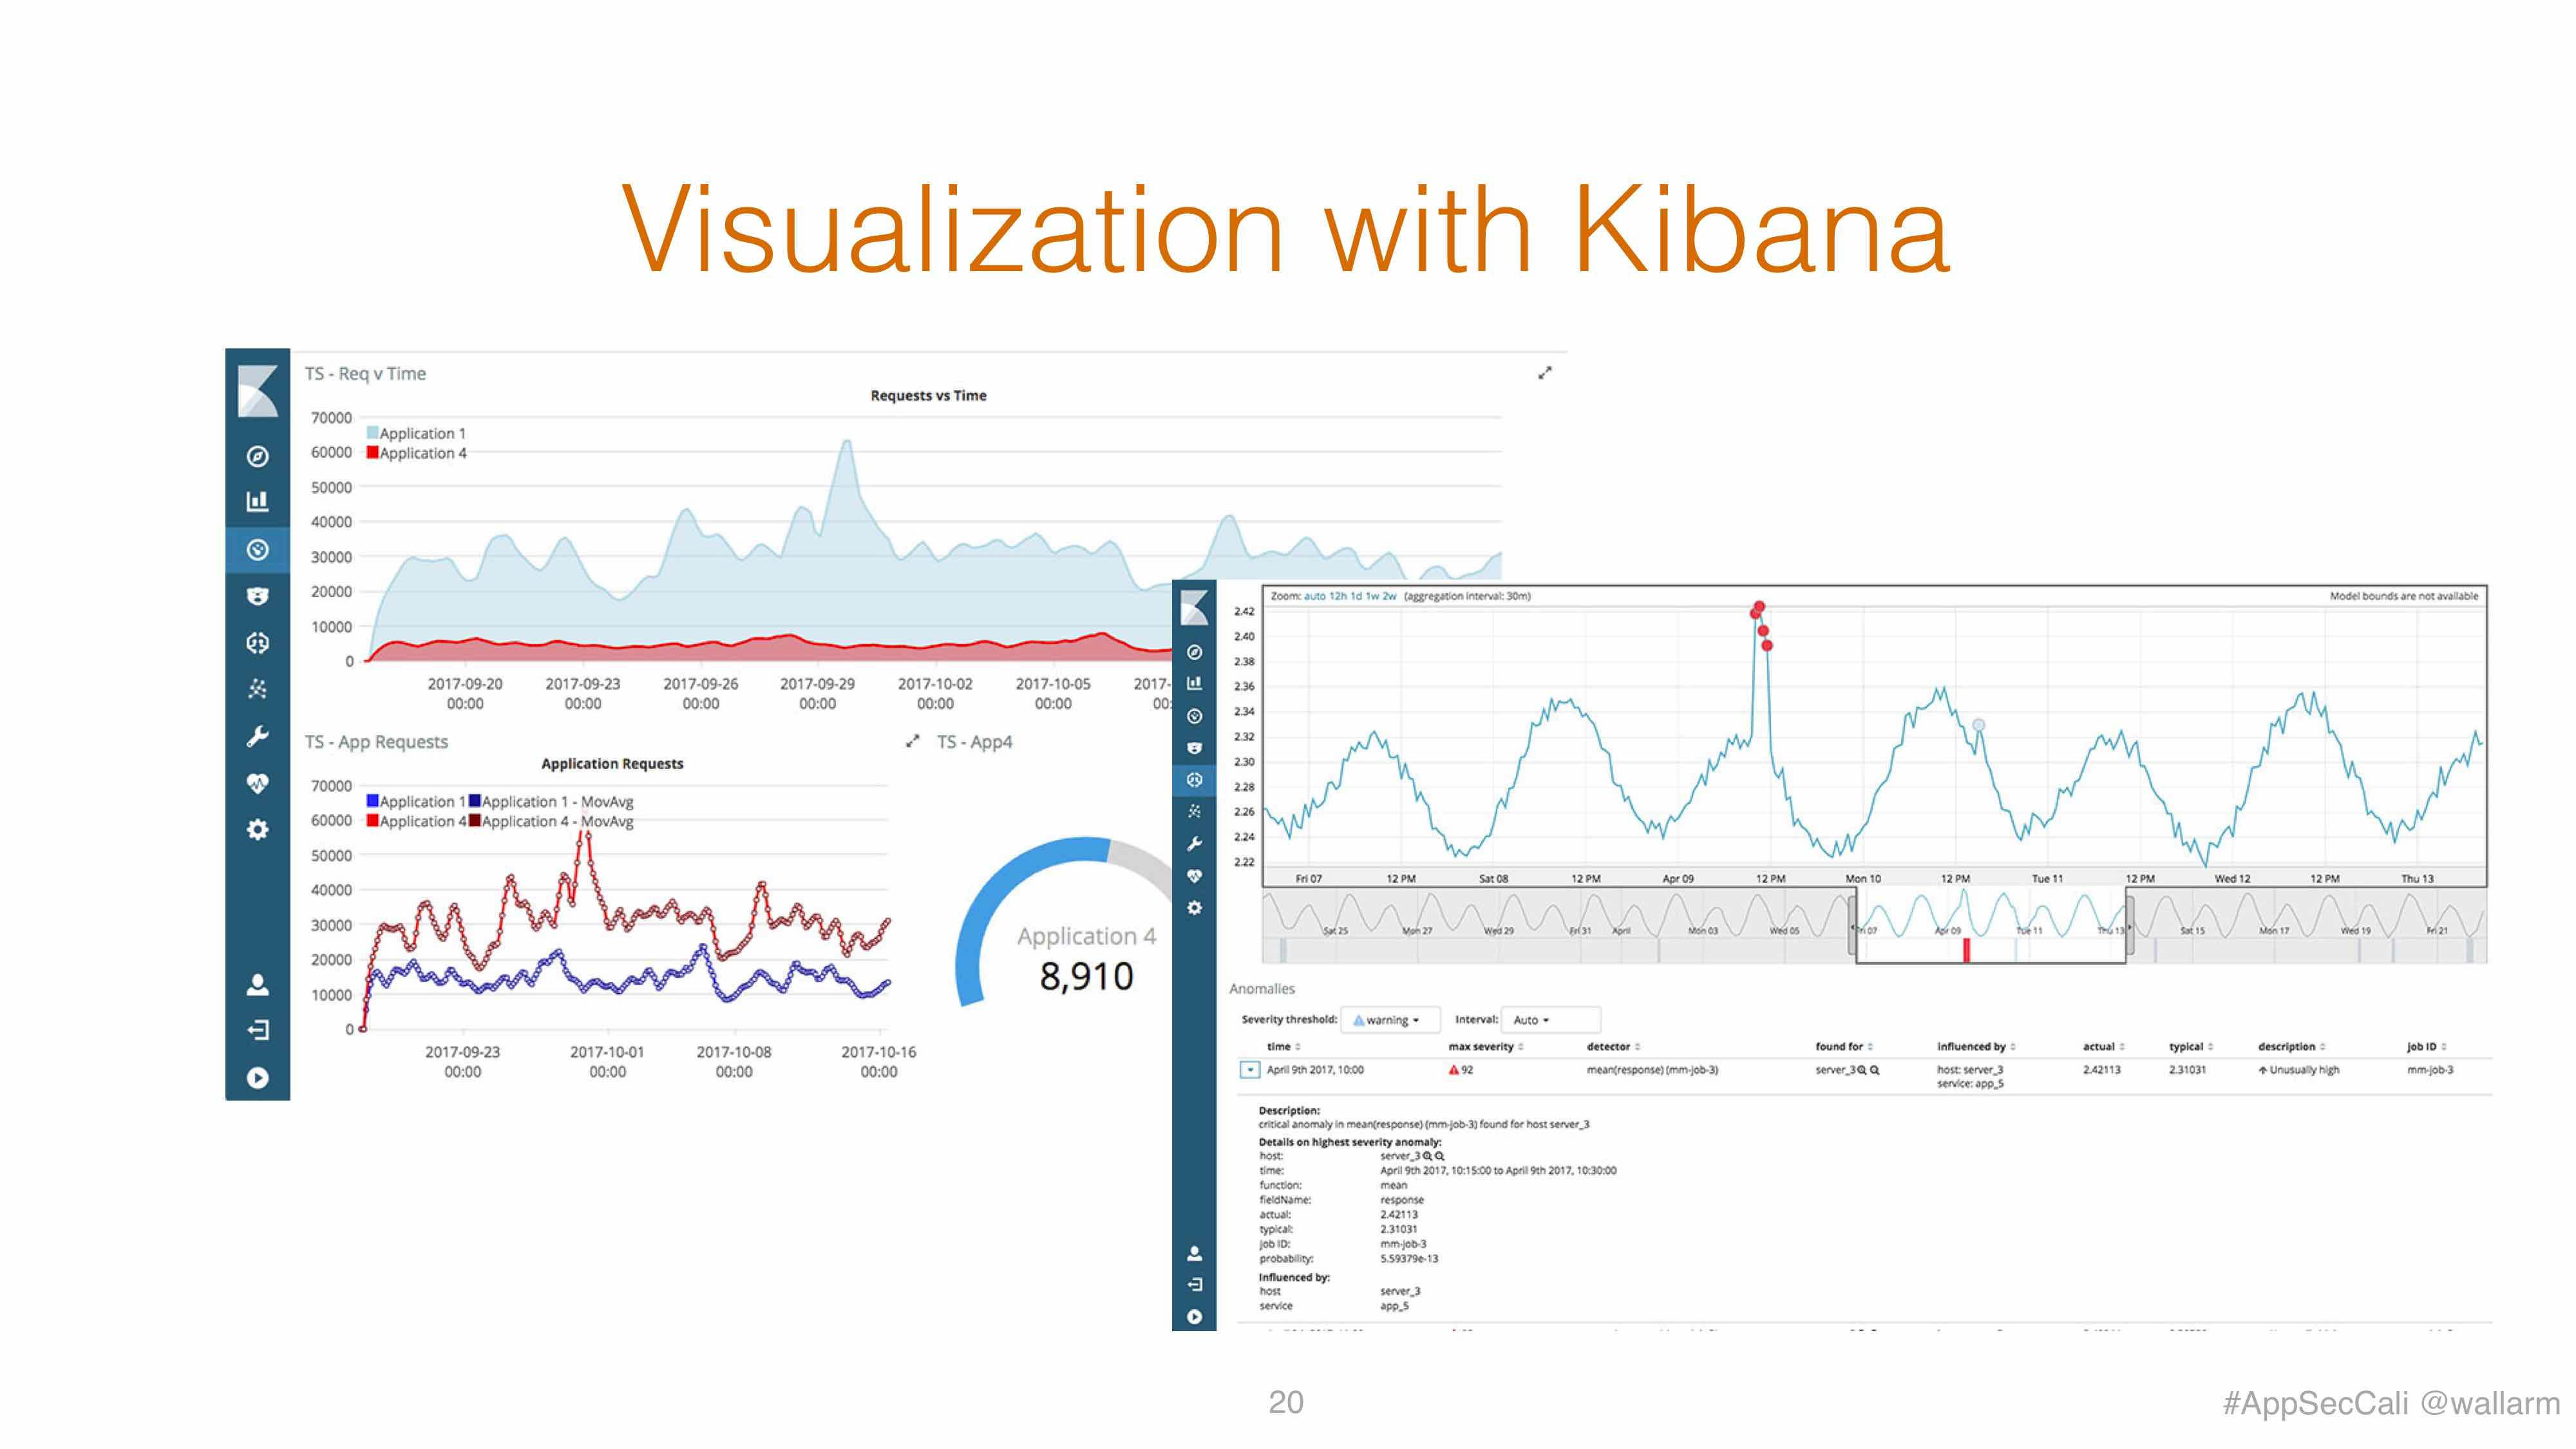 Visualizing Traffid Data with Kibana